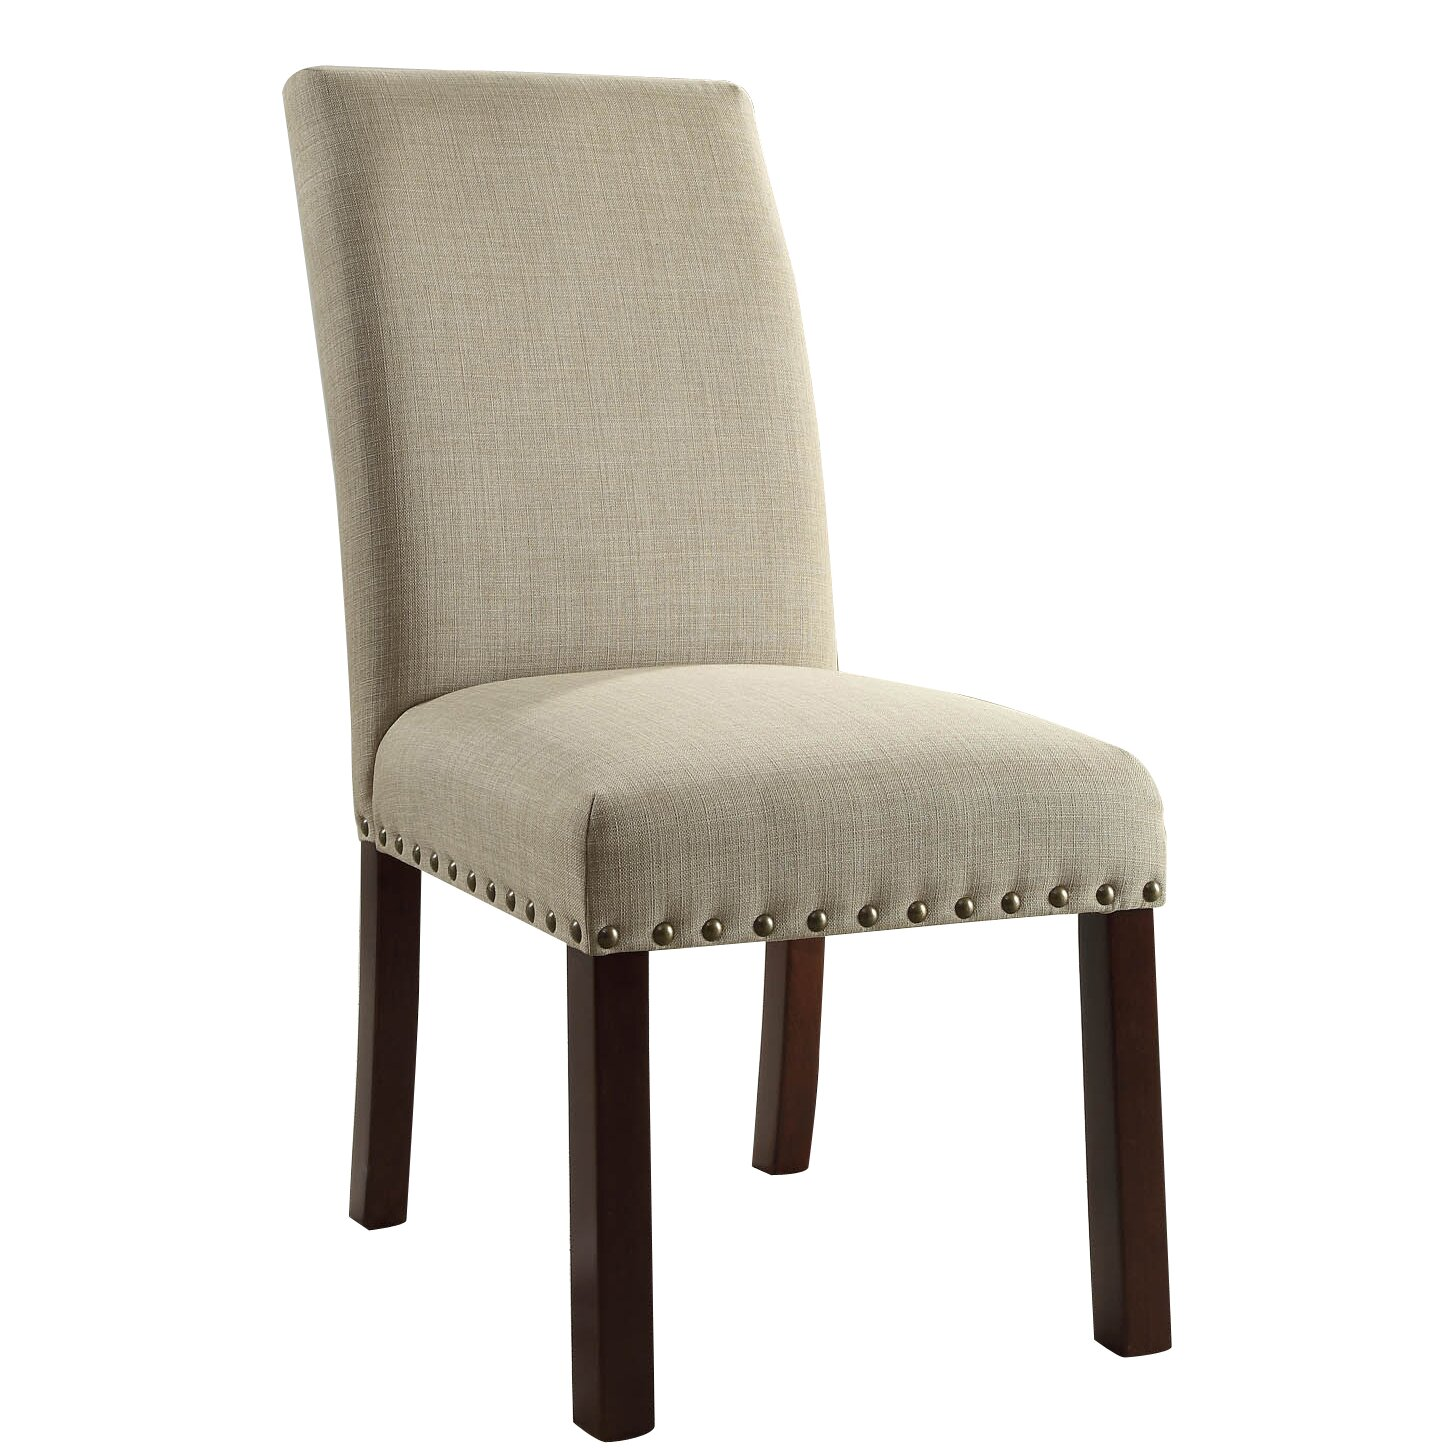 Types Of Chairs For Living Room Homepop Winthrop Parsons Chair Reviews Wayfair